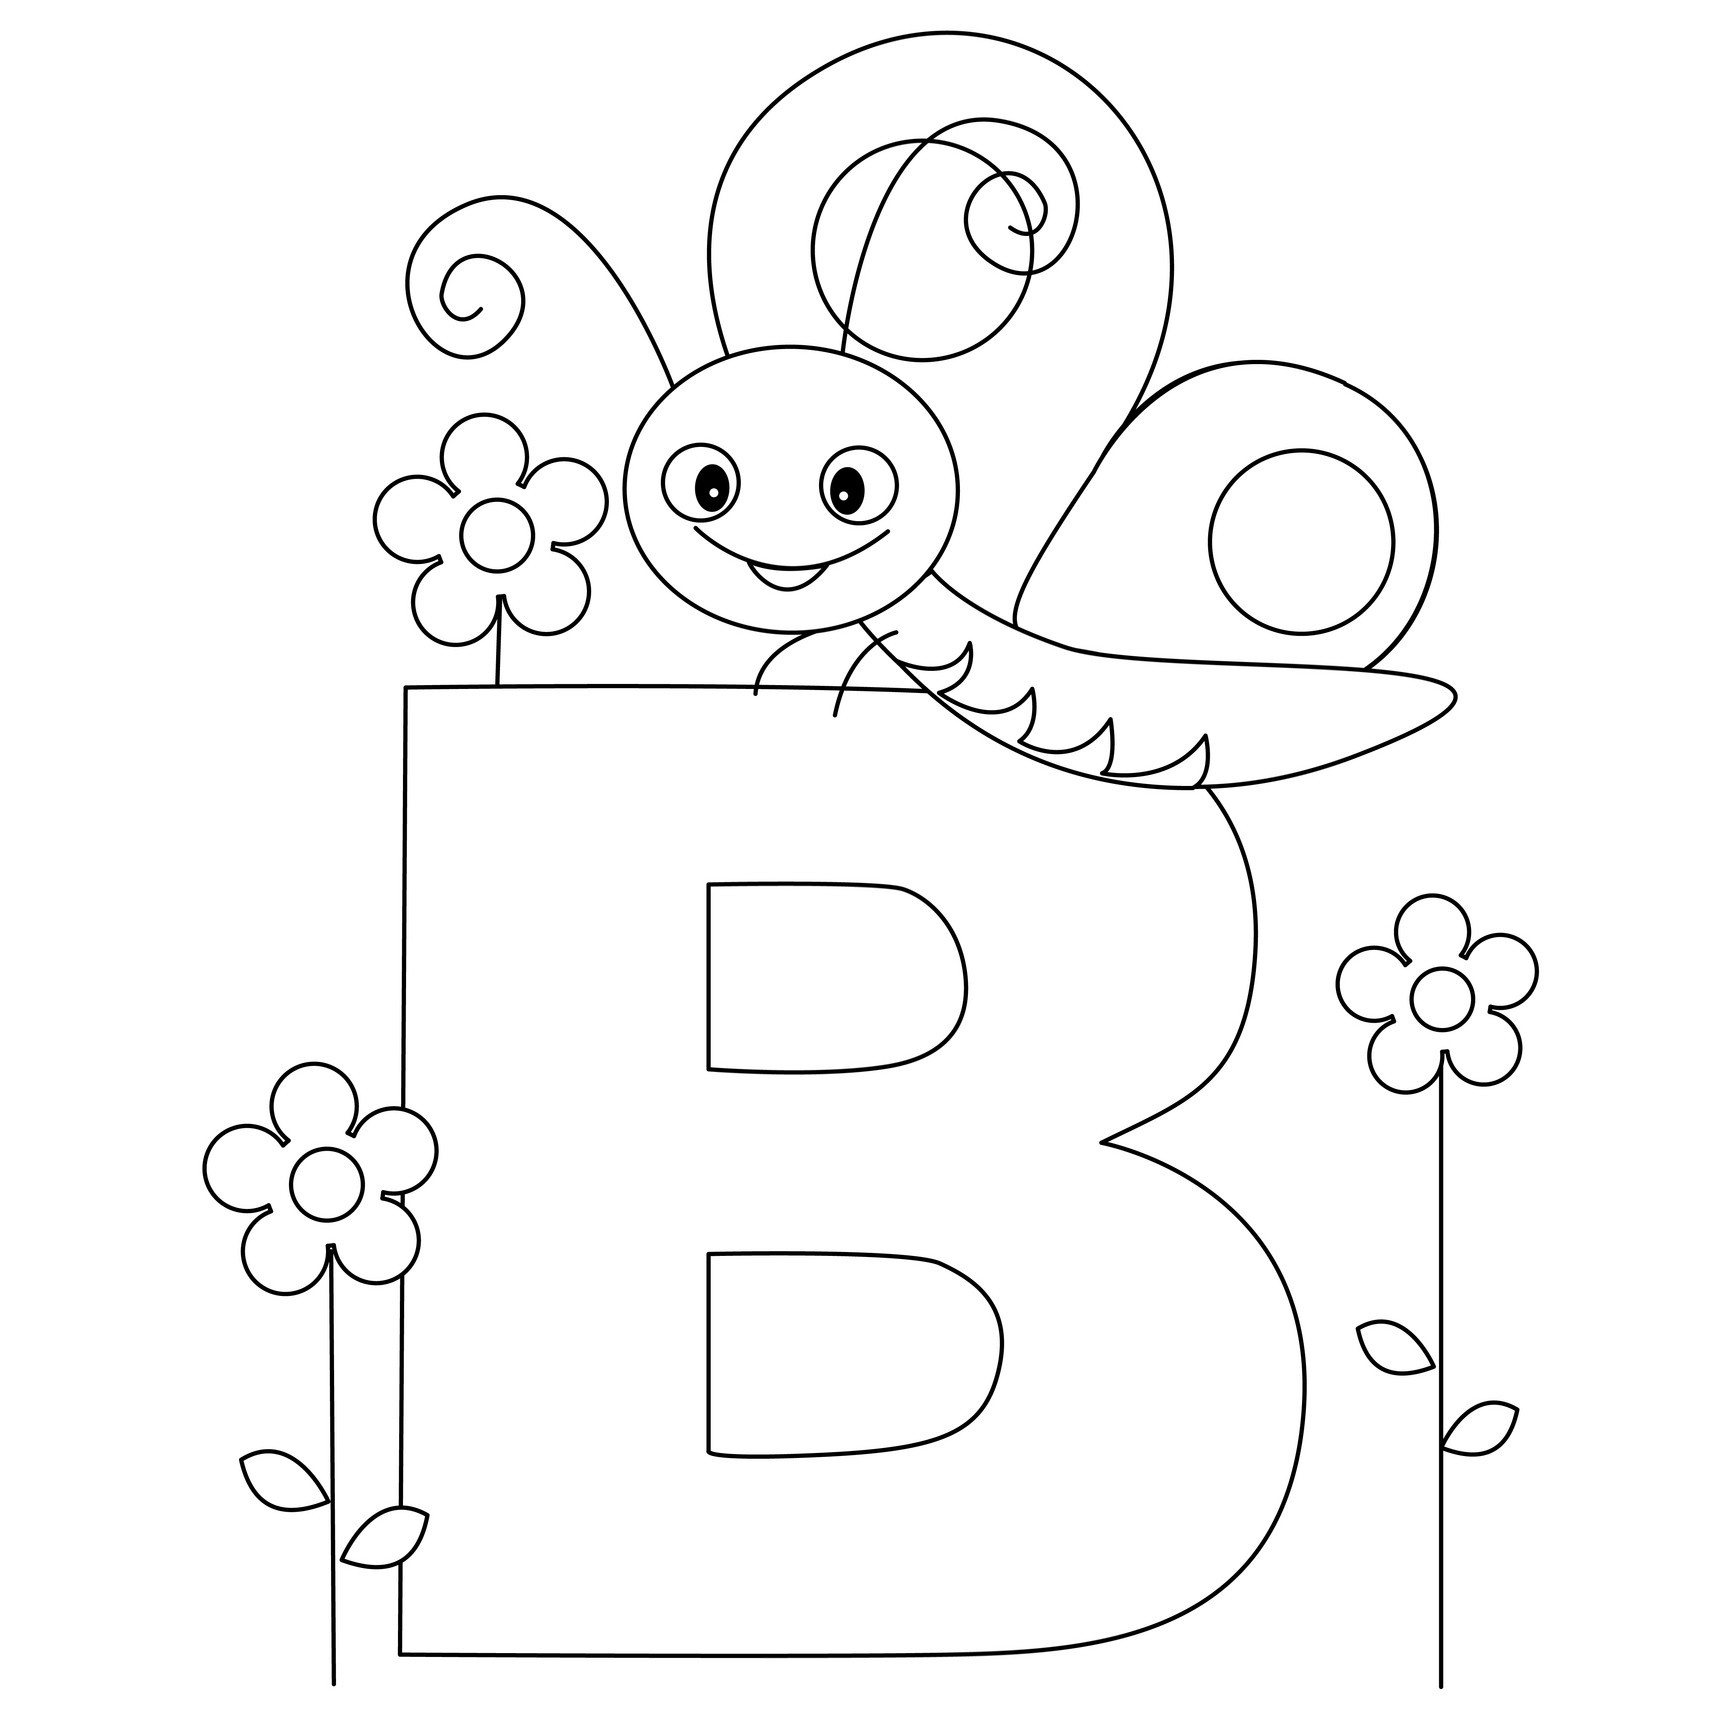 Coloring Pages : Free Printable Alphabet Coloring Pages For Kids - Free Printable Preschool Alphabet Coloring Pages